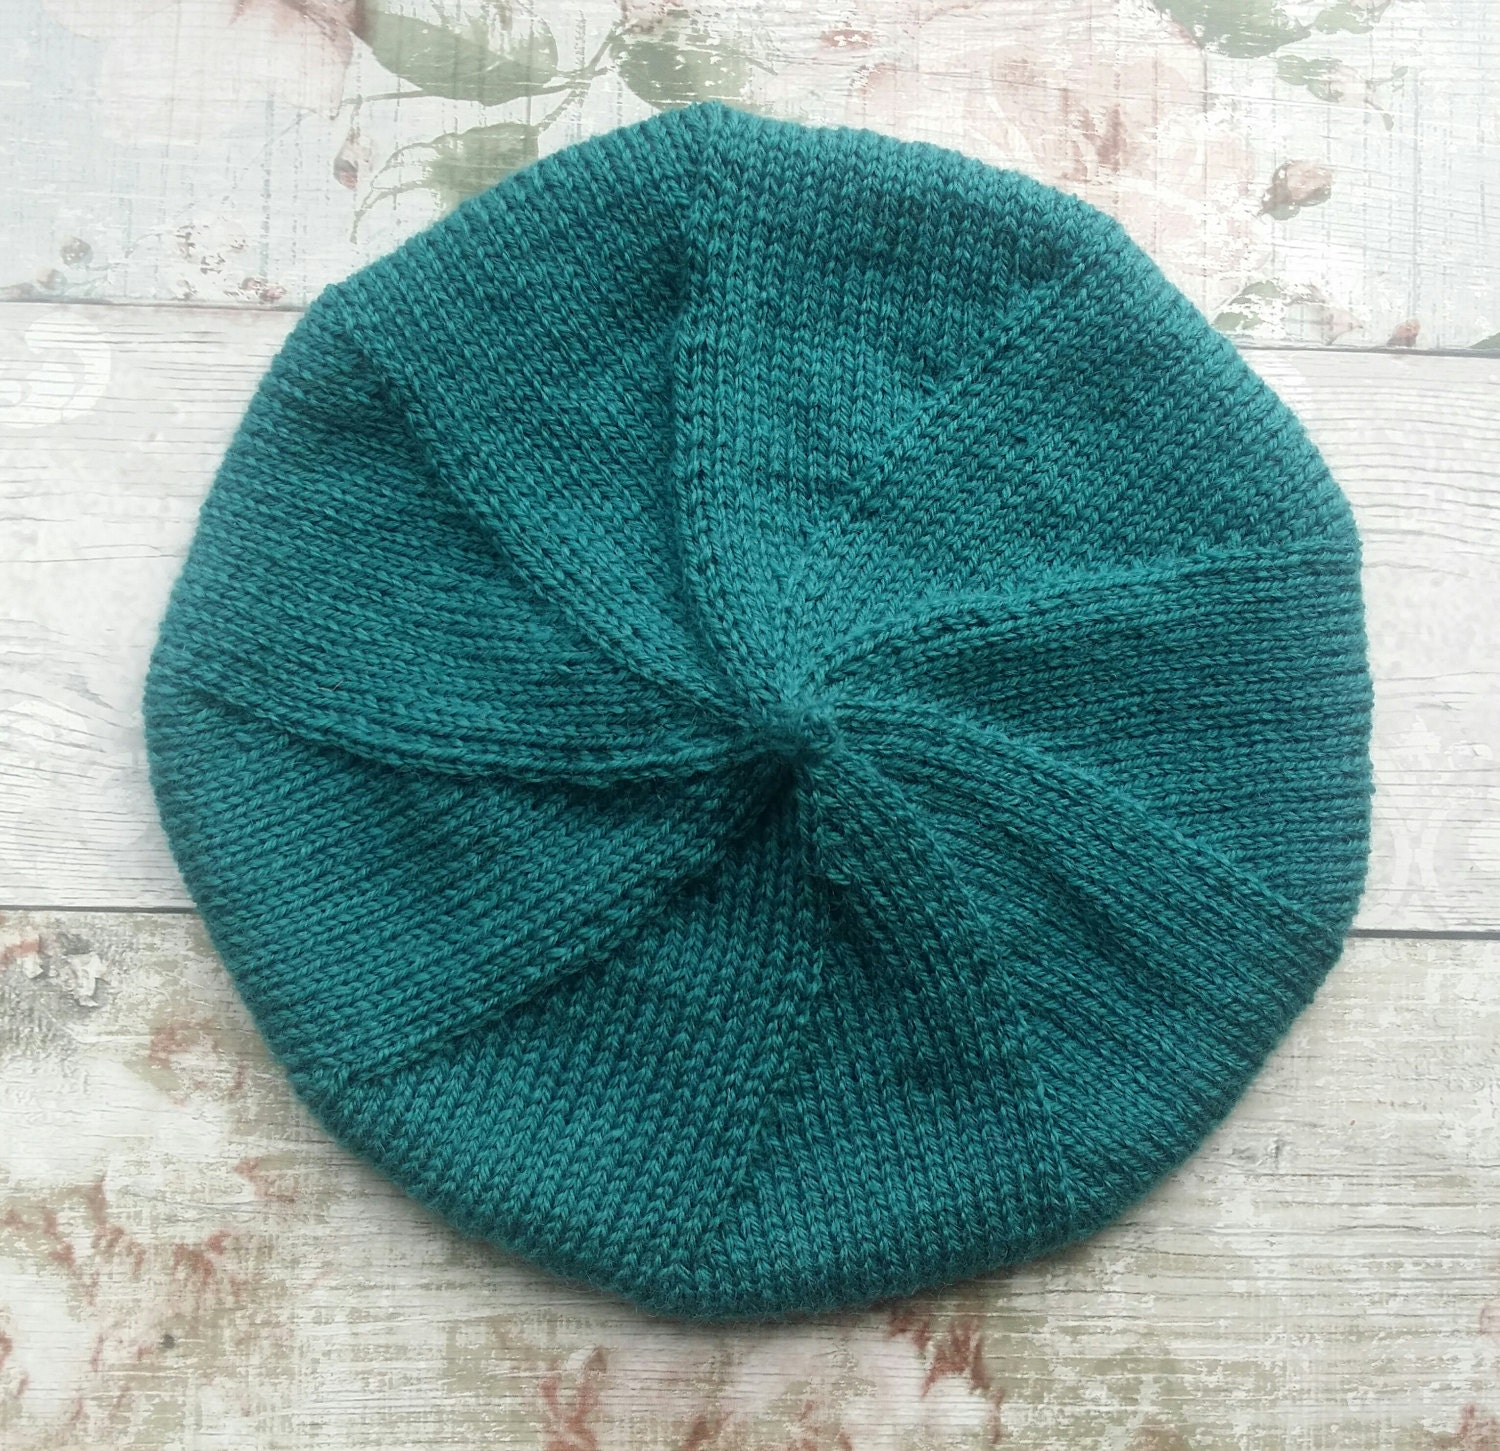 Beret Knitting Pattern - Knitted Hat Pattern - Beret - Tam Pattern ...